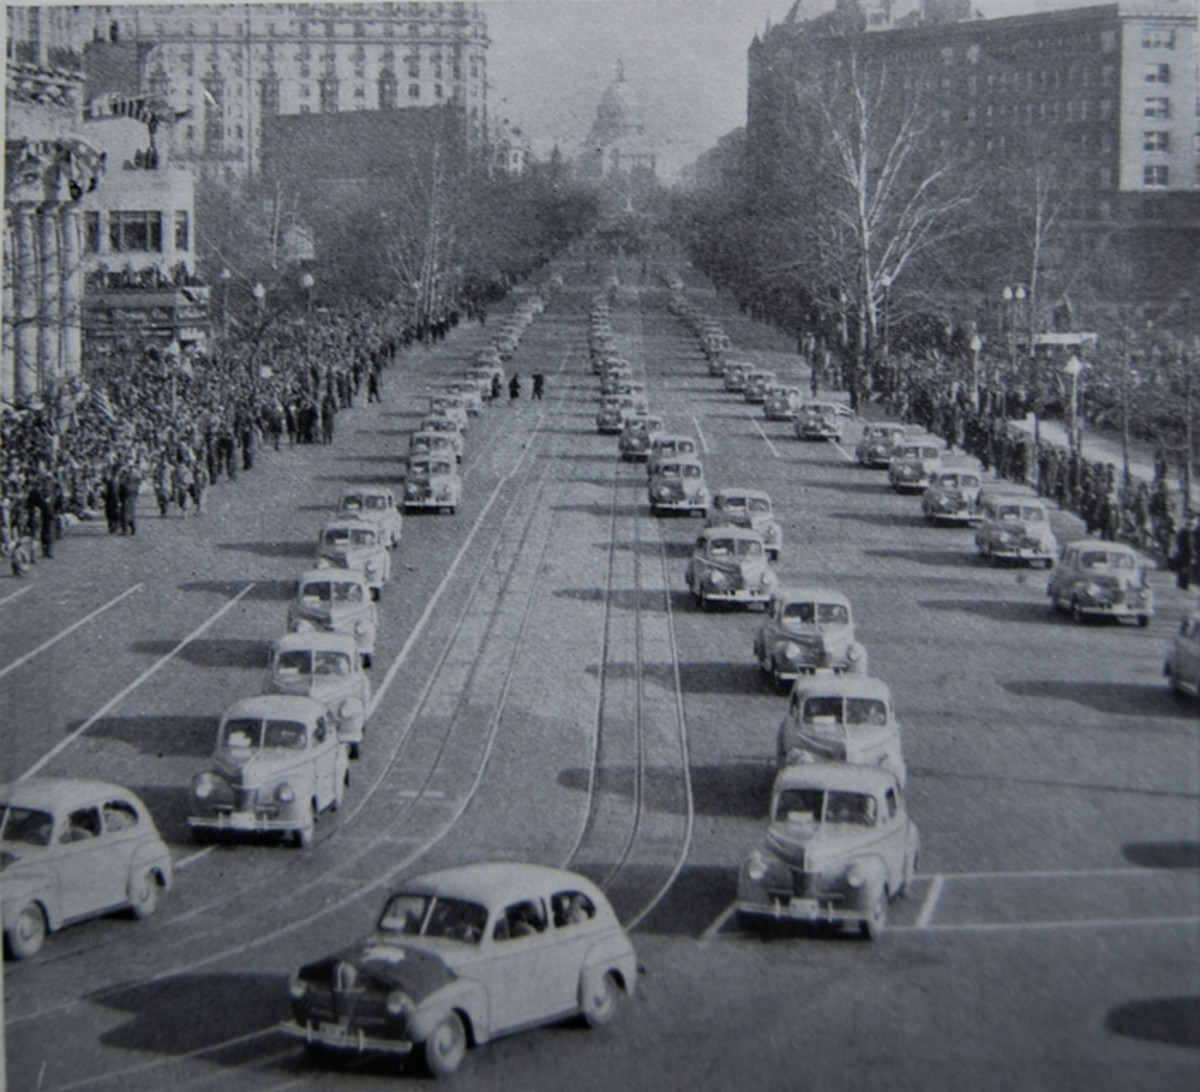 A fleet of 140 Ford courtesy cars in the 1941 inaugural parade in Washington, D.C.